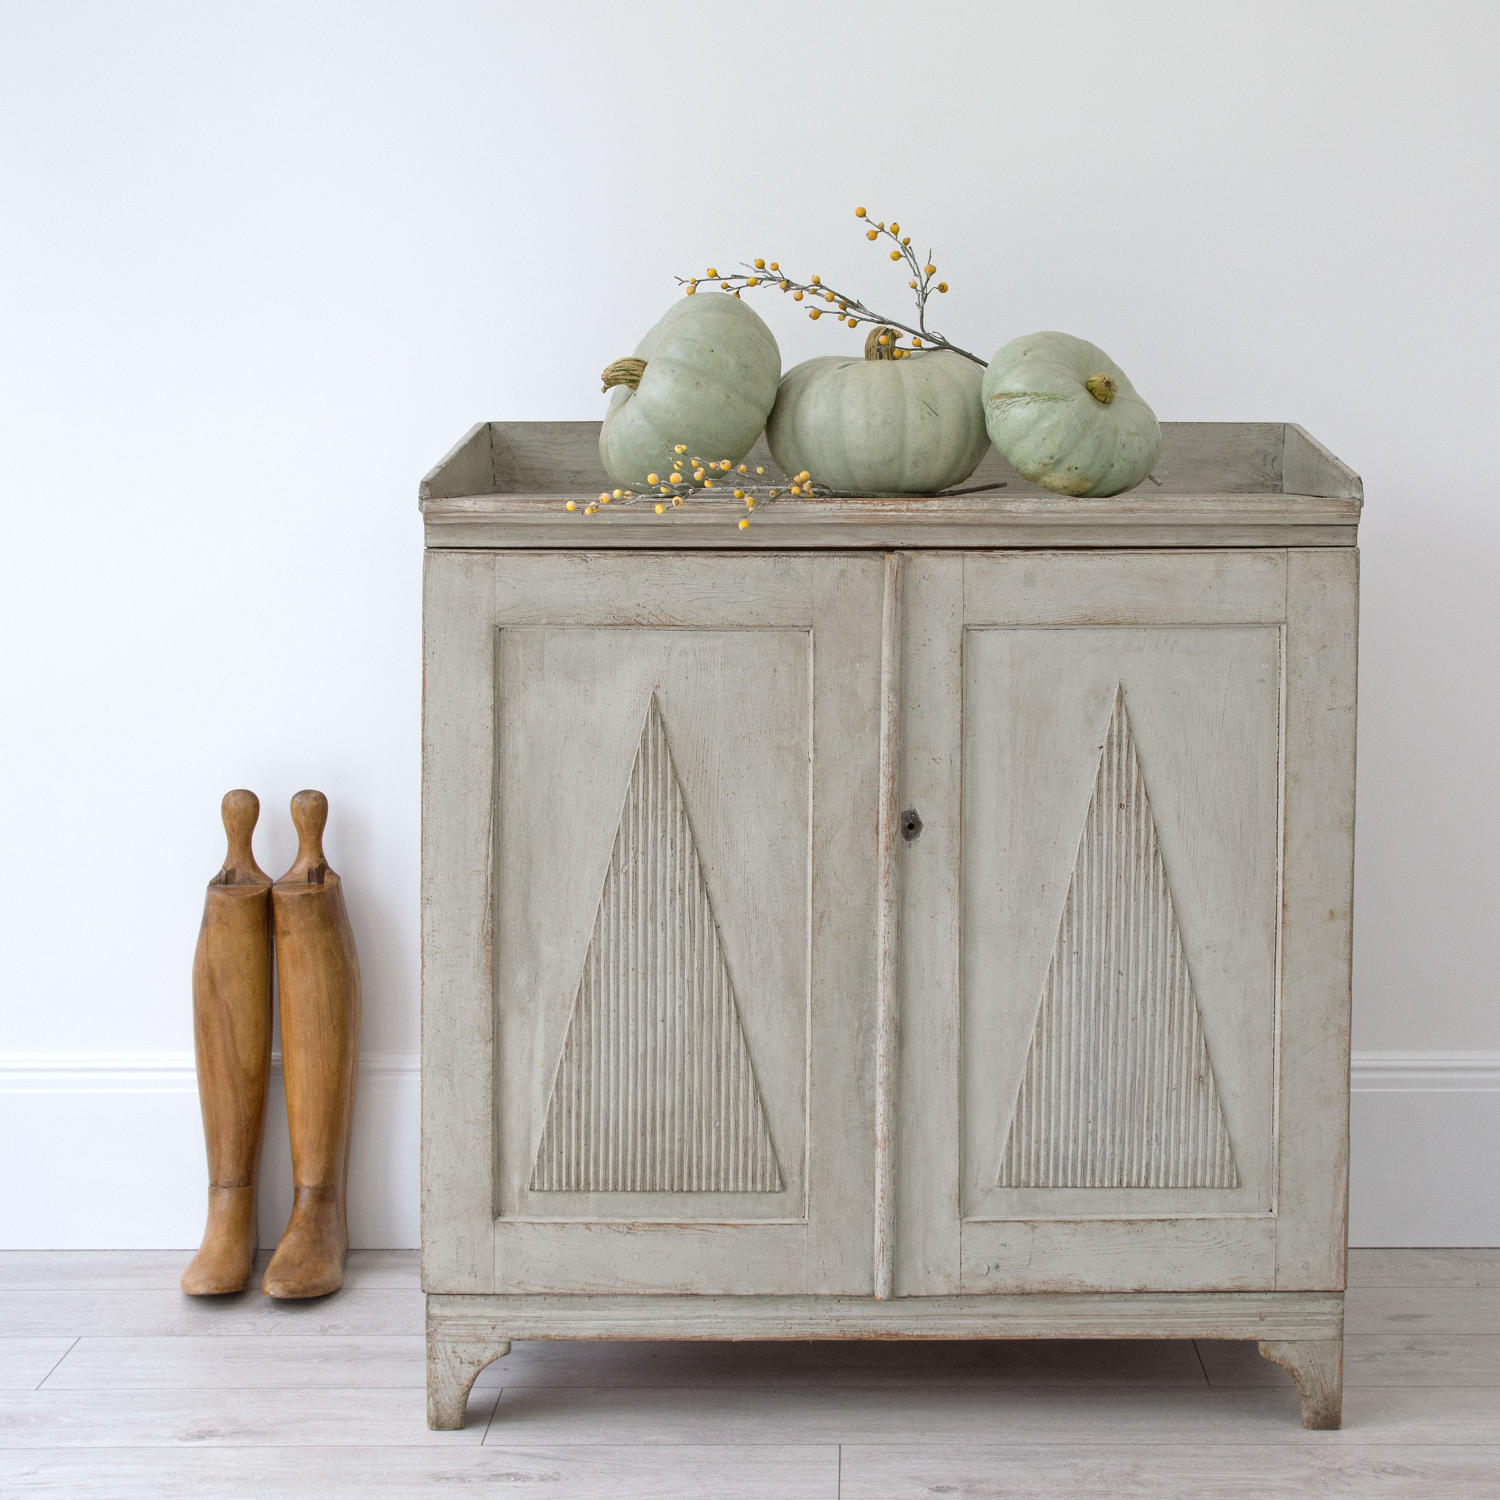 LATE 18TH CENTURY GUSTAVIAN PERIOD SWEDISH SIDEBOARD